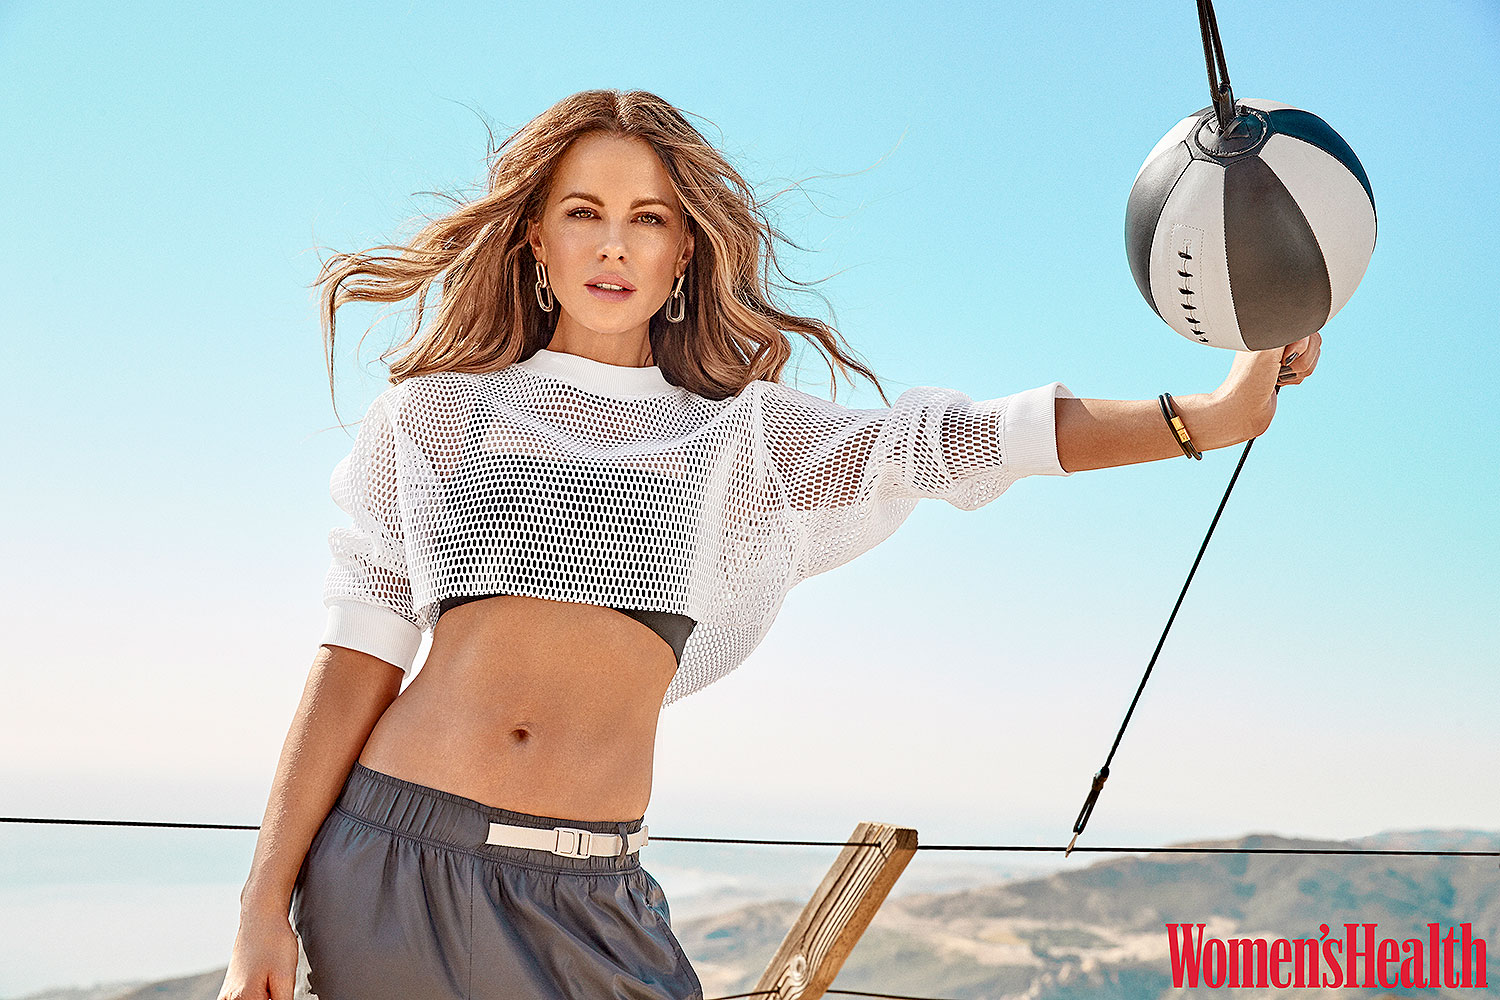 Kate Beckinsale Women's Health cover